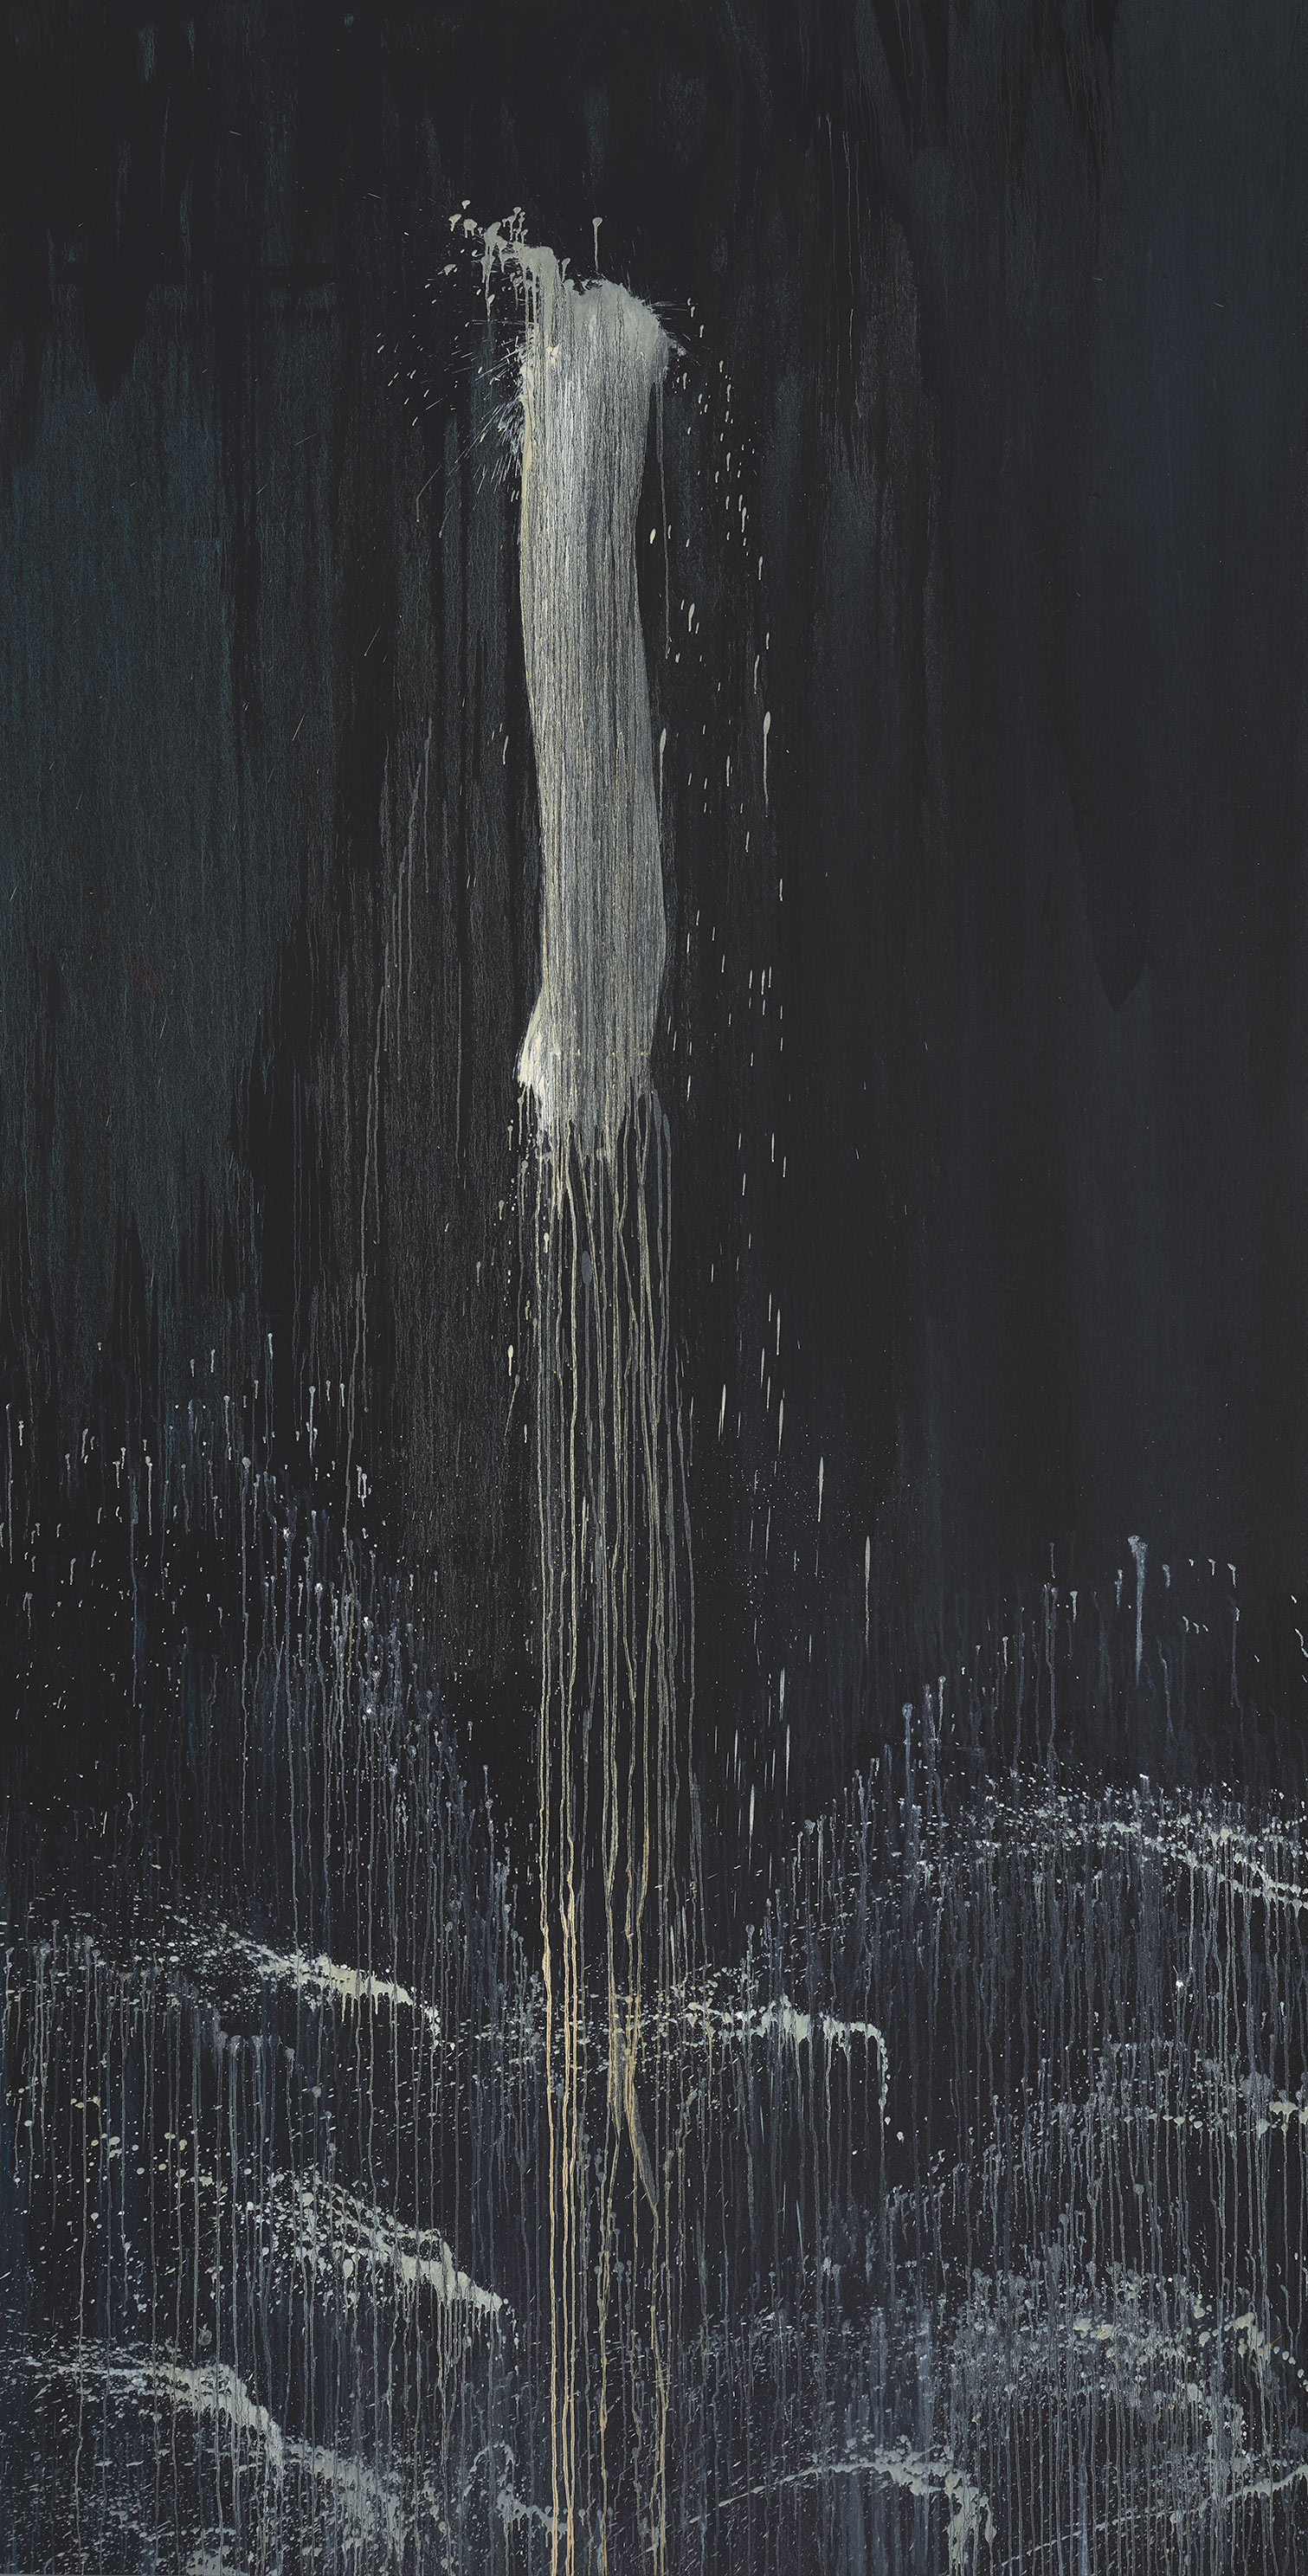 Pat Steir, Black and White One-Stroke Waterfall, 1992